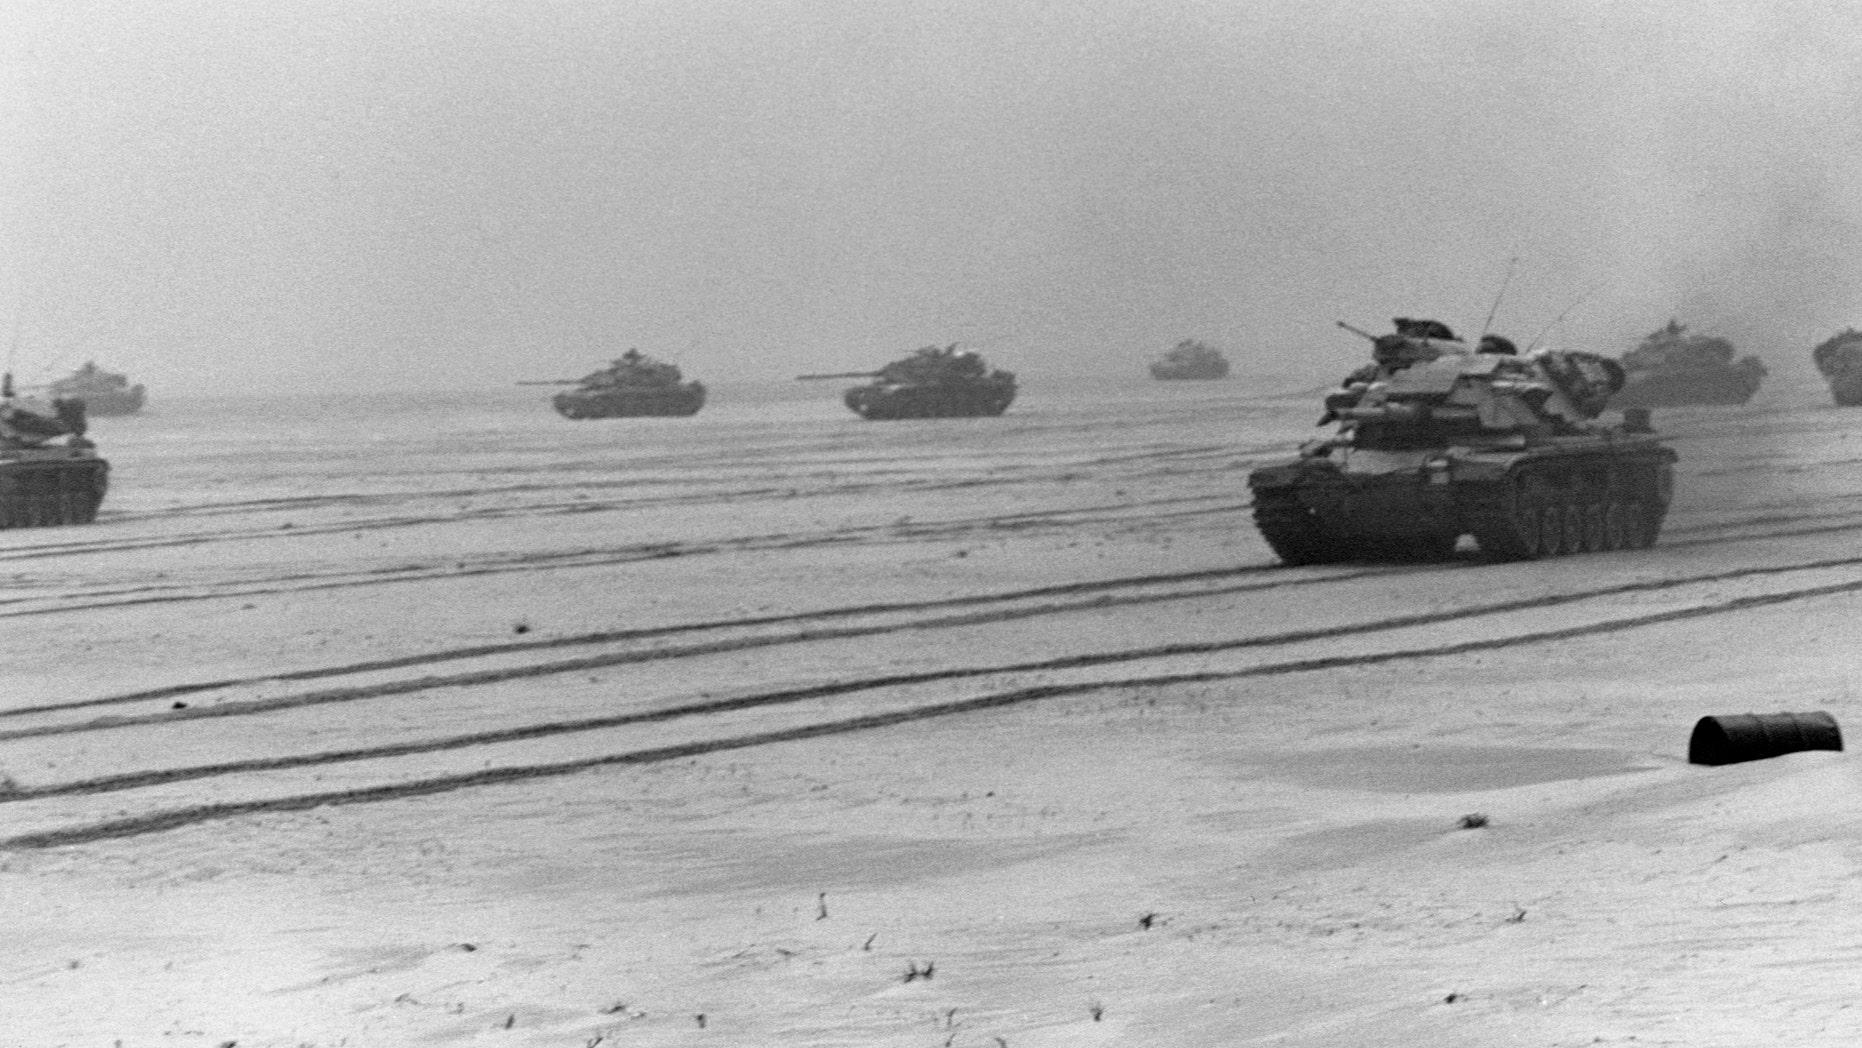 File photo - Marines of 1st Tank Battalion, 1st Marine Division head toward Kuwait City in M60A1 main battle tanks during the third day of the ground offensive of Operation Desert Storm, an operation to liberate Kuwait after the Iraqi invasion. February 26, 1991. (Photo by © CORBIS/Corbis via Getty Images)